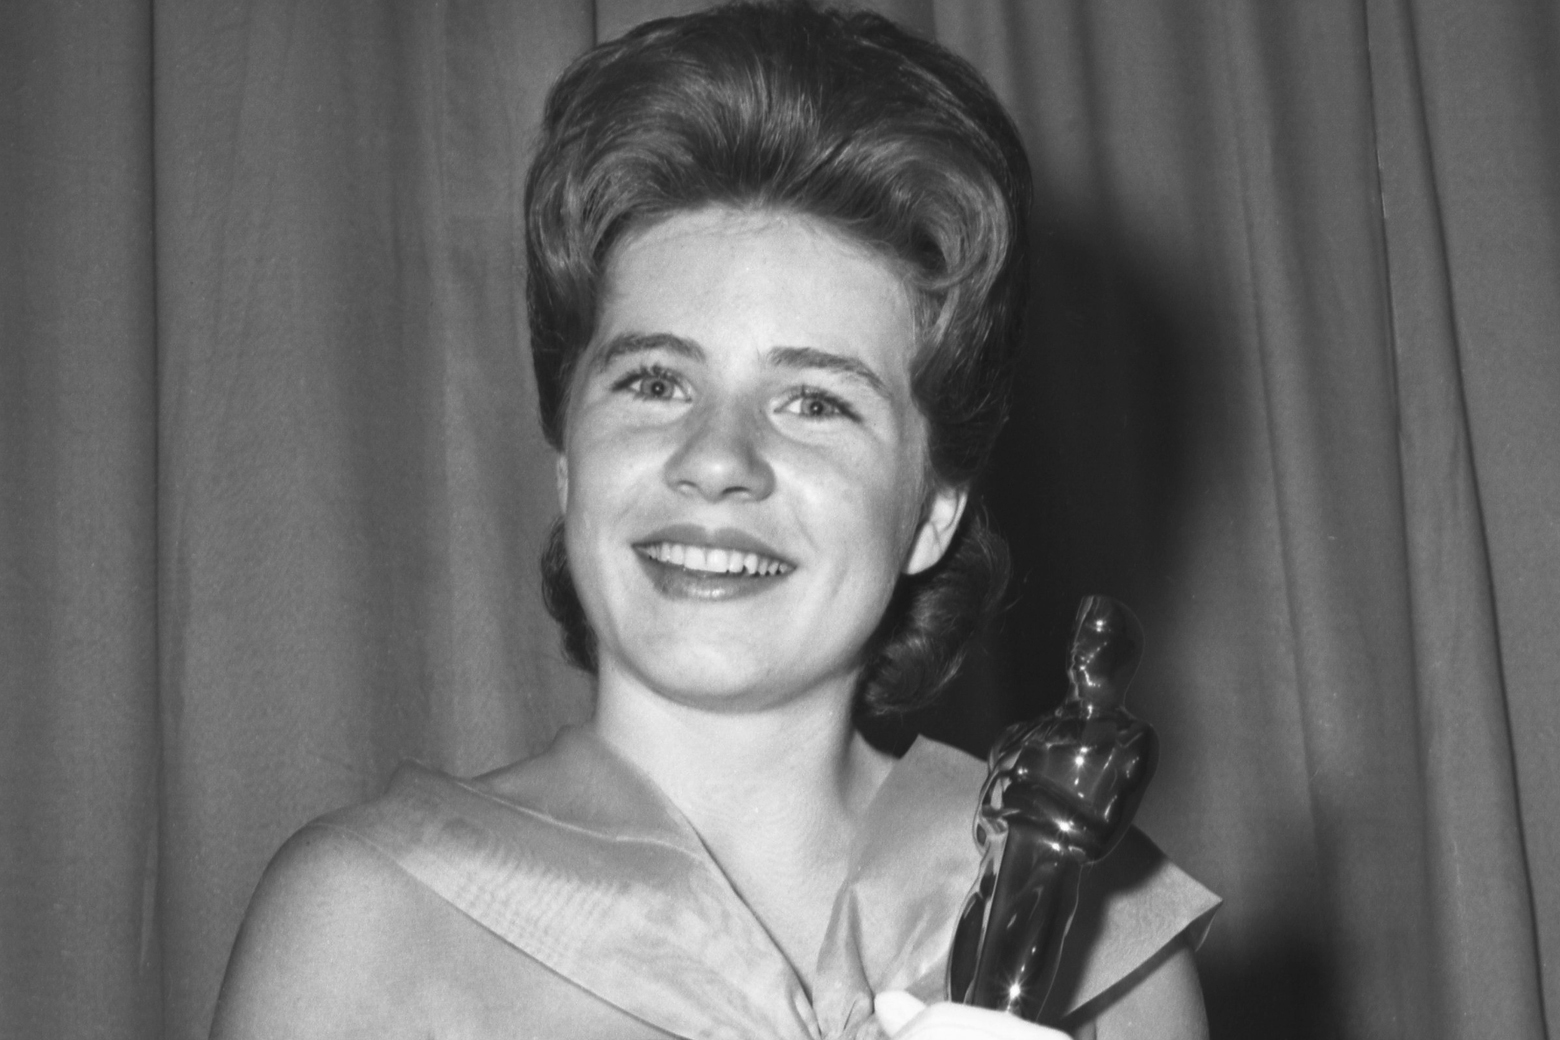 Watch besides Oscar Winning Actress Patty Duke Dies At 69 together with What You Can Learn About Life From Actress Helen Mirrens Tattoo additionally 527847 furthermore Watch. on oscar award picture in helen